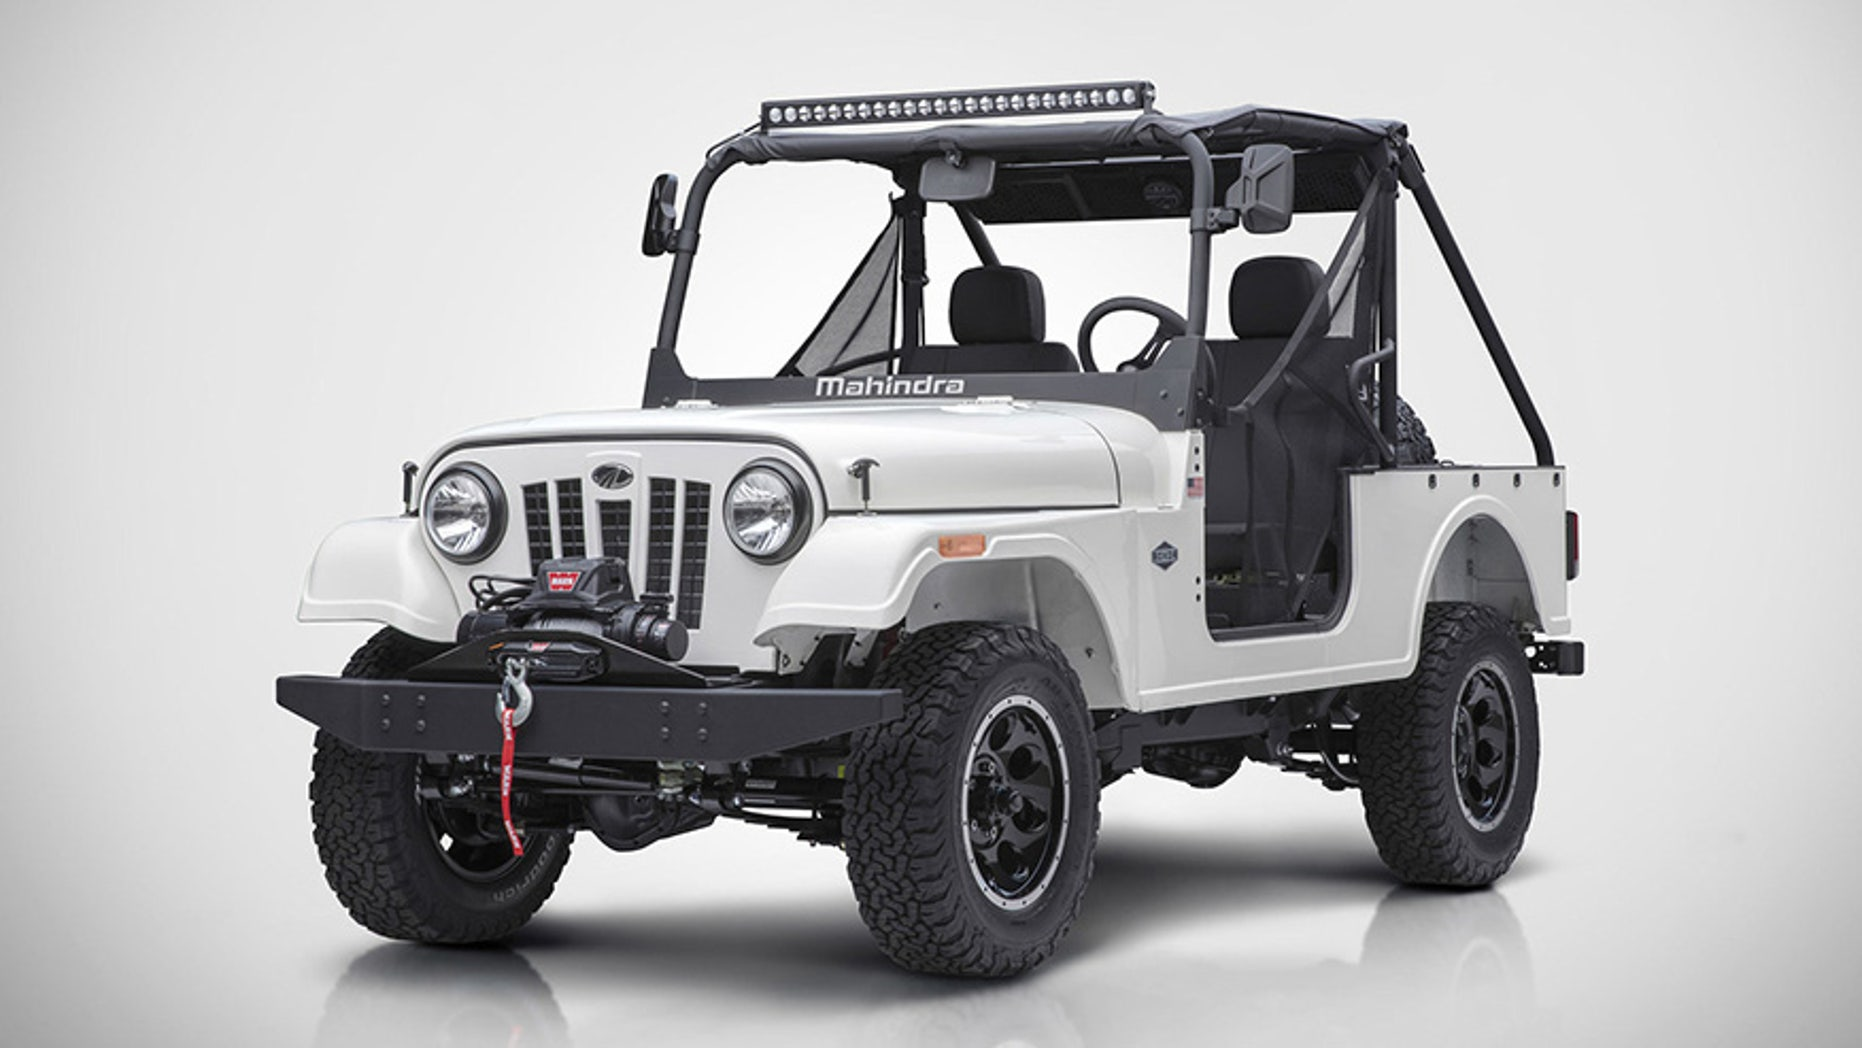 The Roxor Is Powered By A Four Cylinder Turbodiesel Engine With 62 Hp And  And